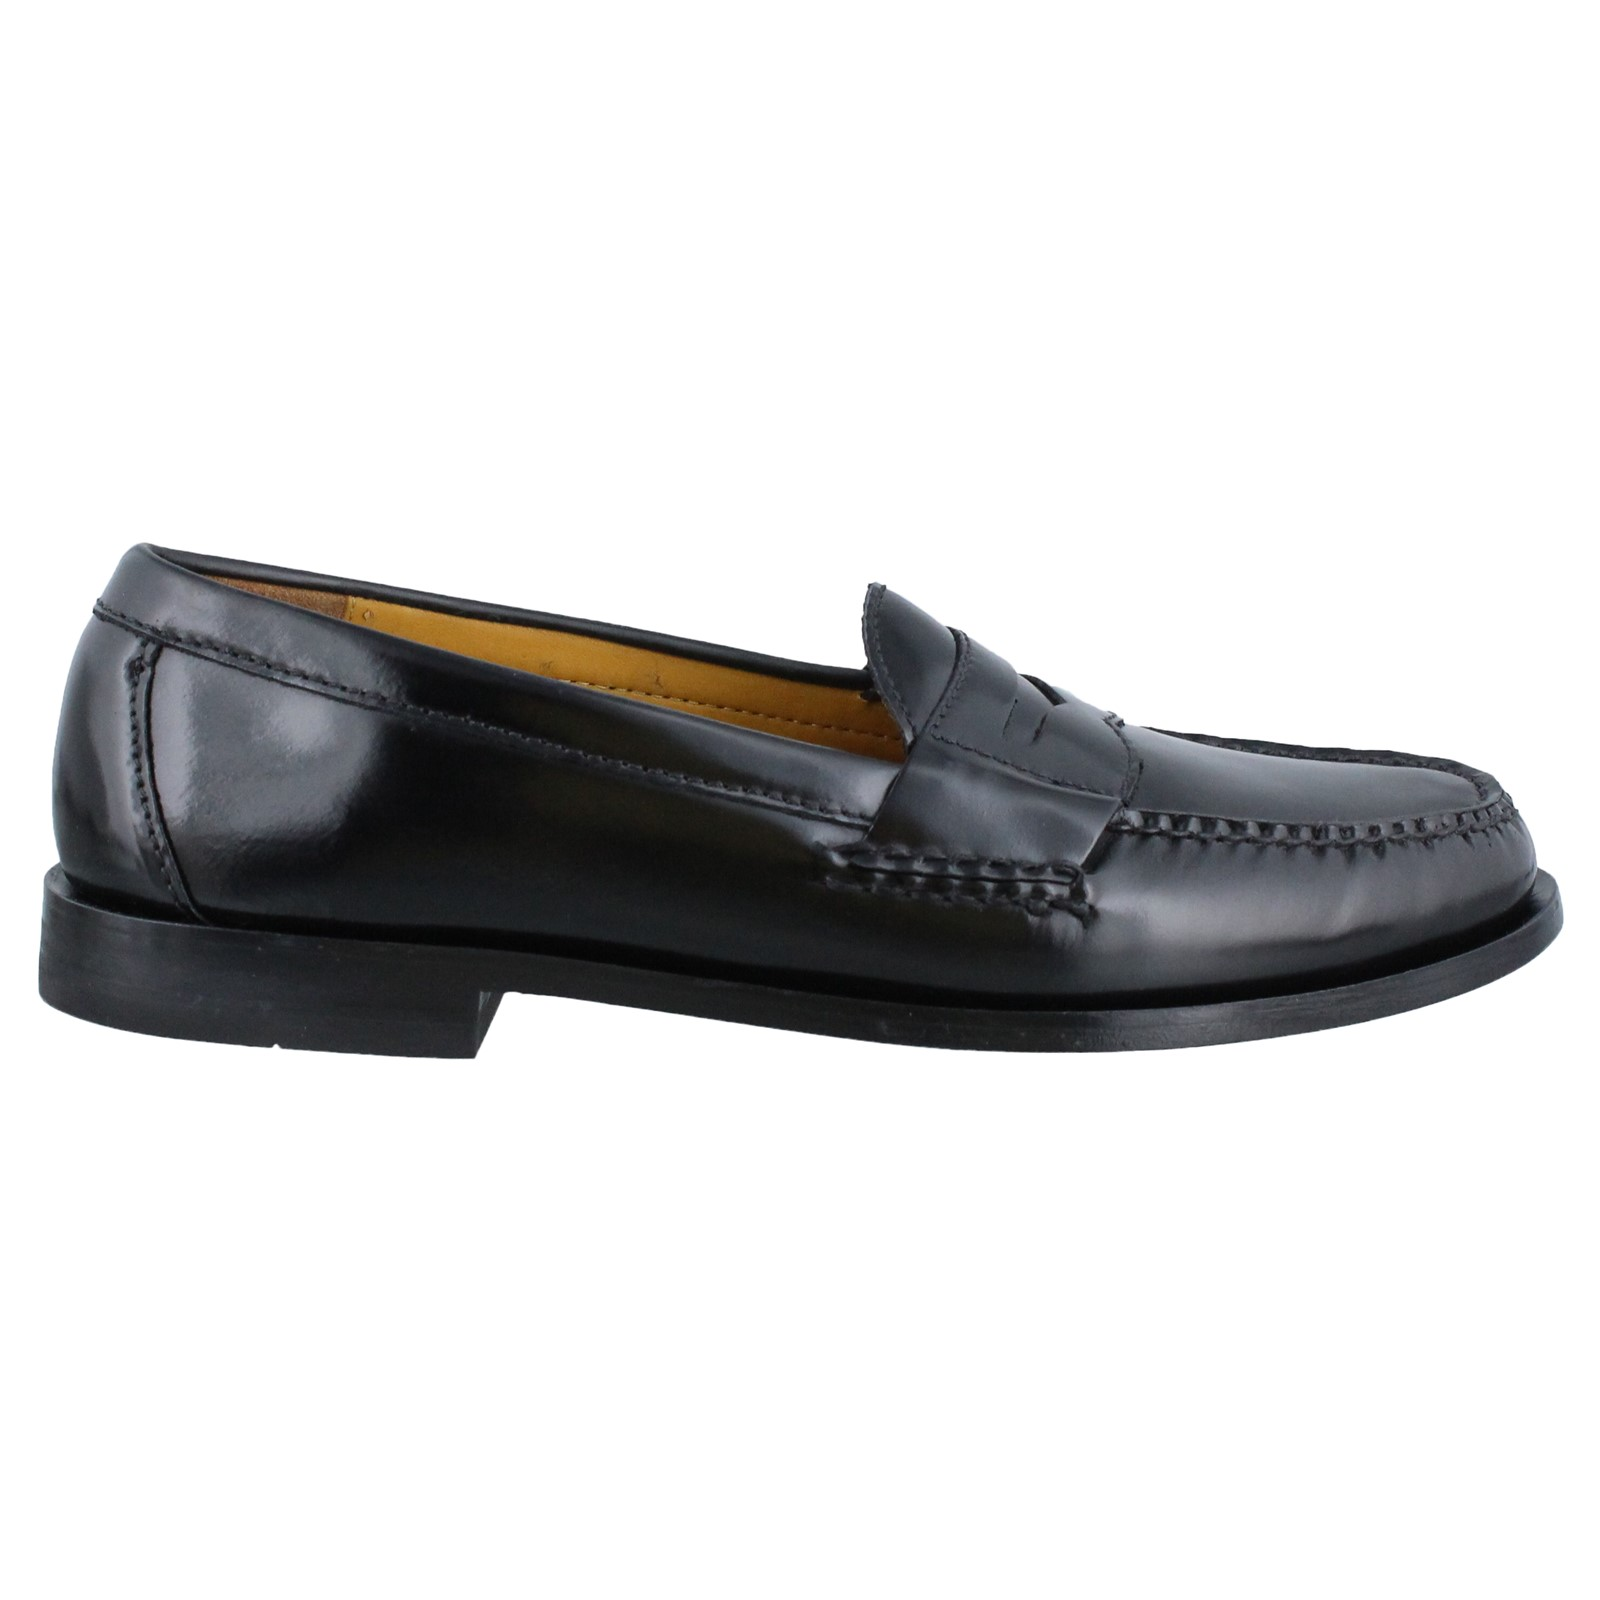 Men's Cole Haan, Pinch Penny Loafer